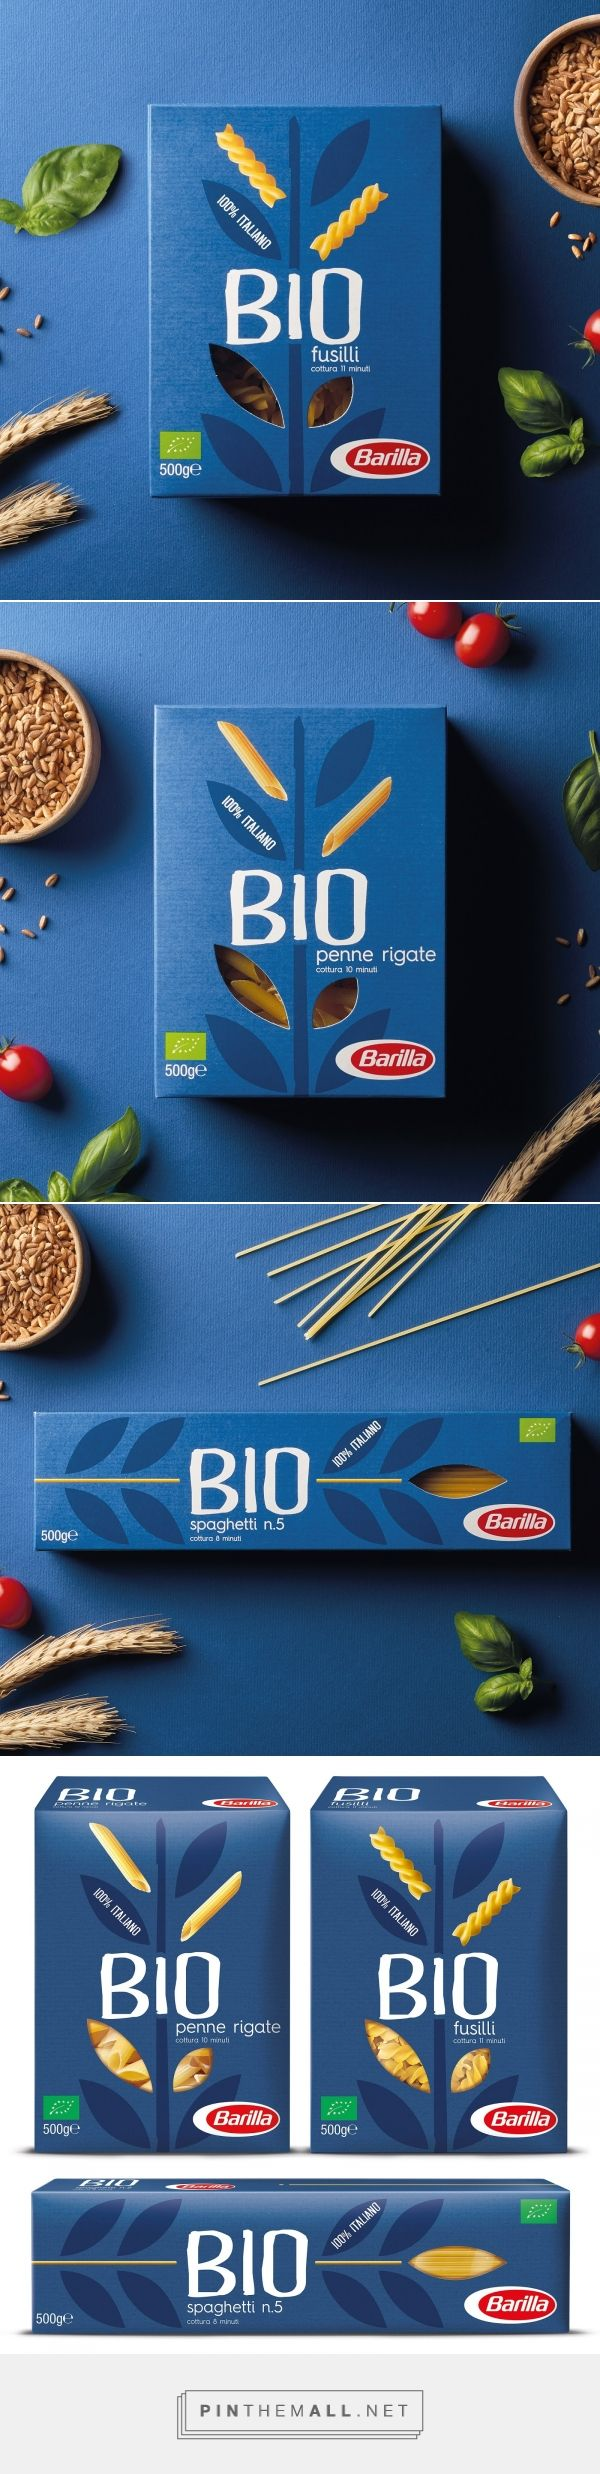 Barilla Bio - Packaging of the World - Creative Package Design Gallery - http://www.packagingoftheworld.com/2018/02/barilla-bio.html